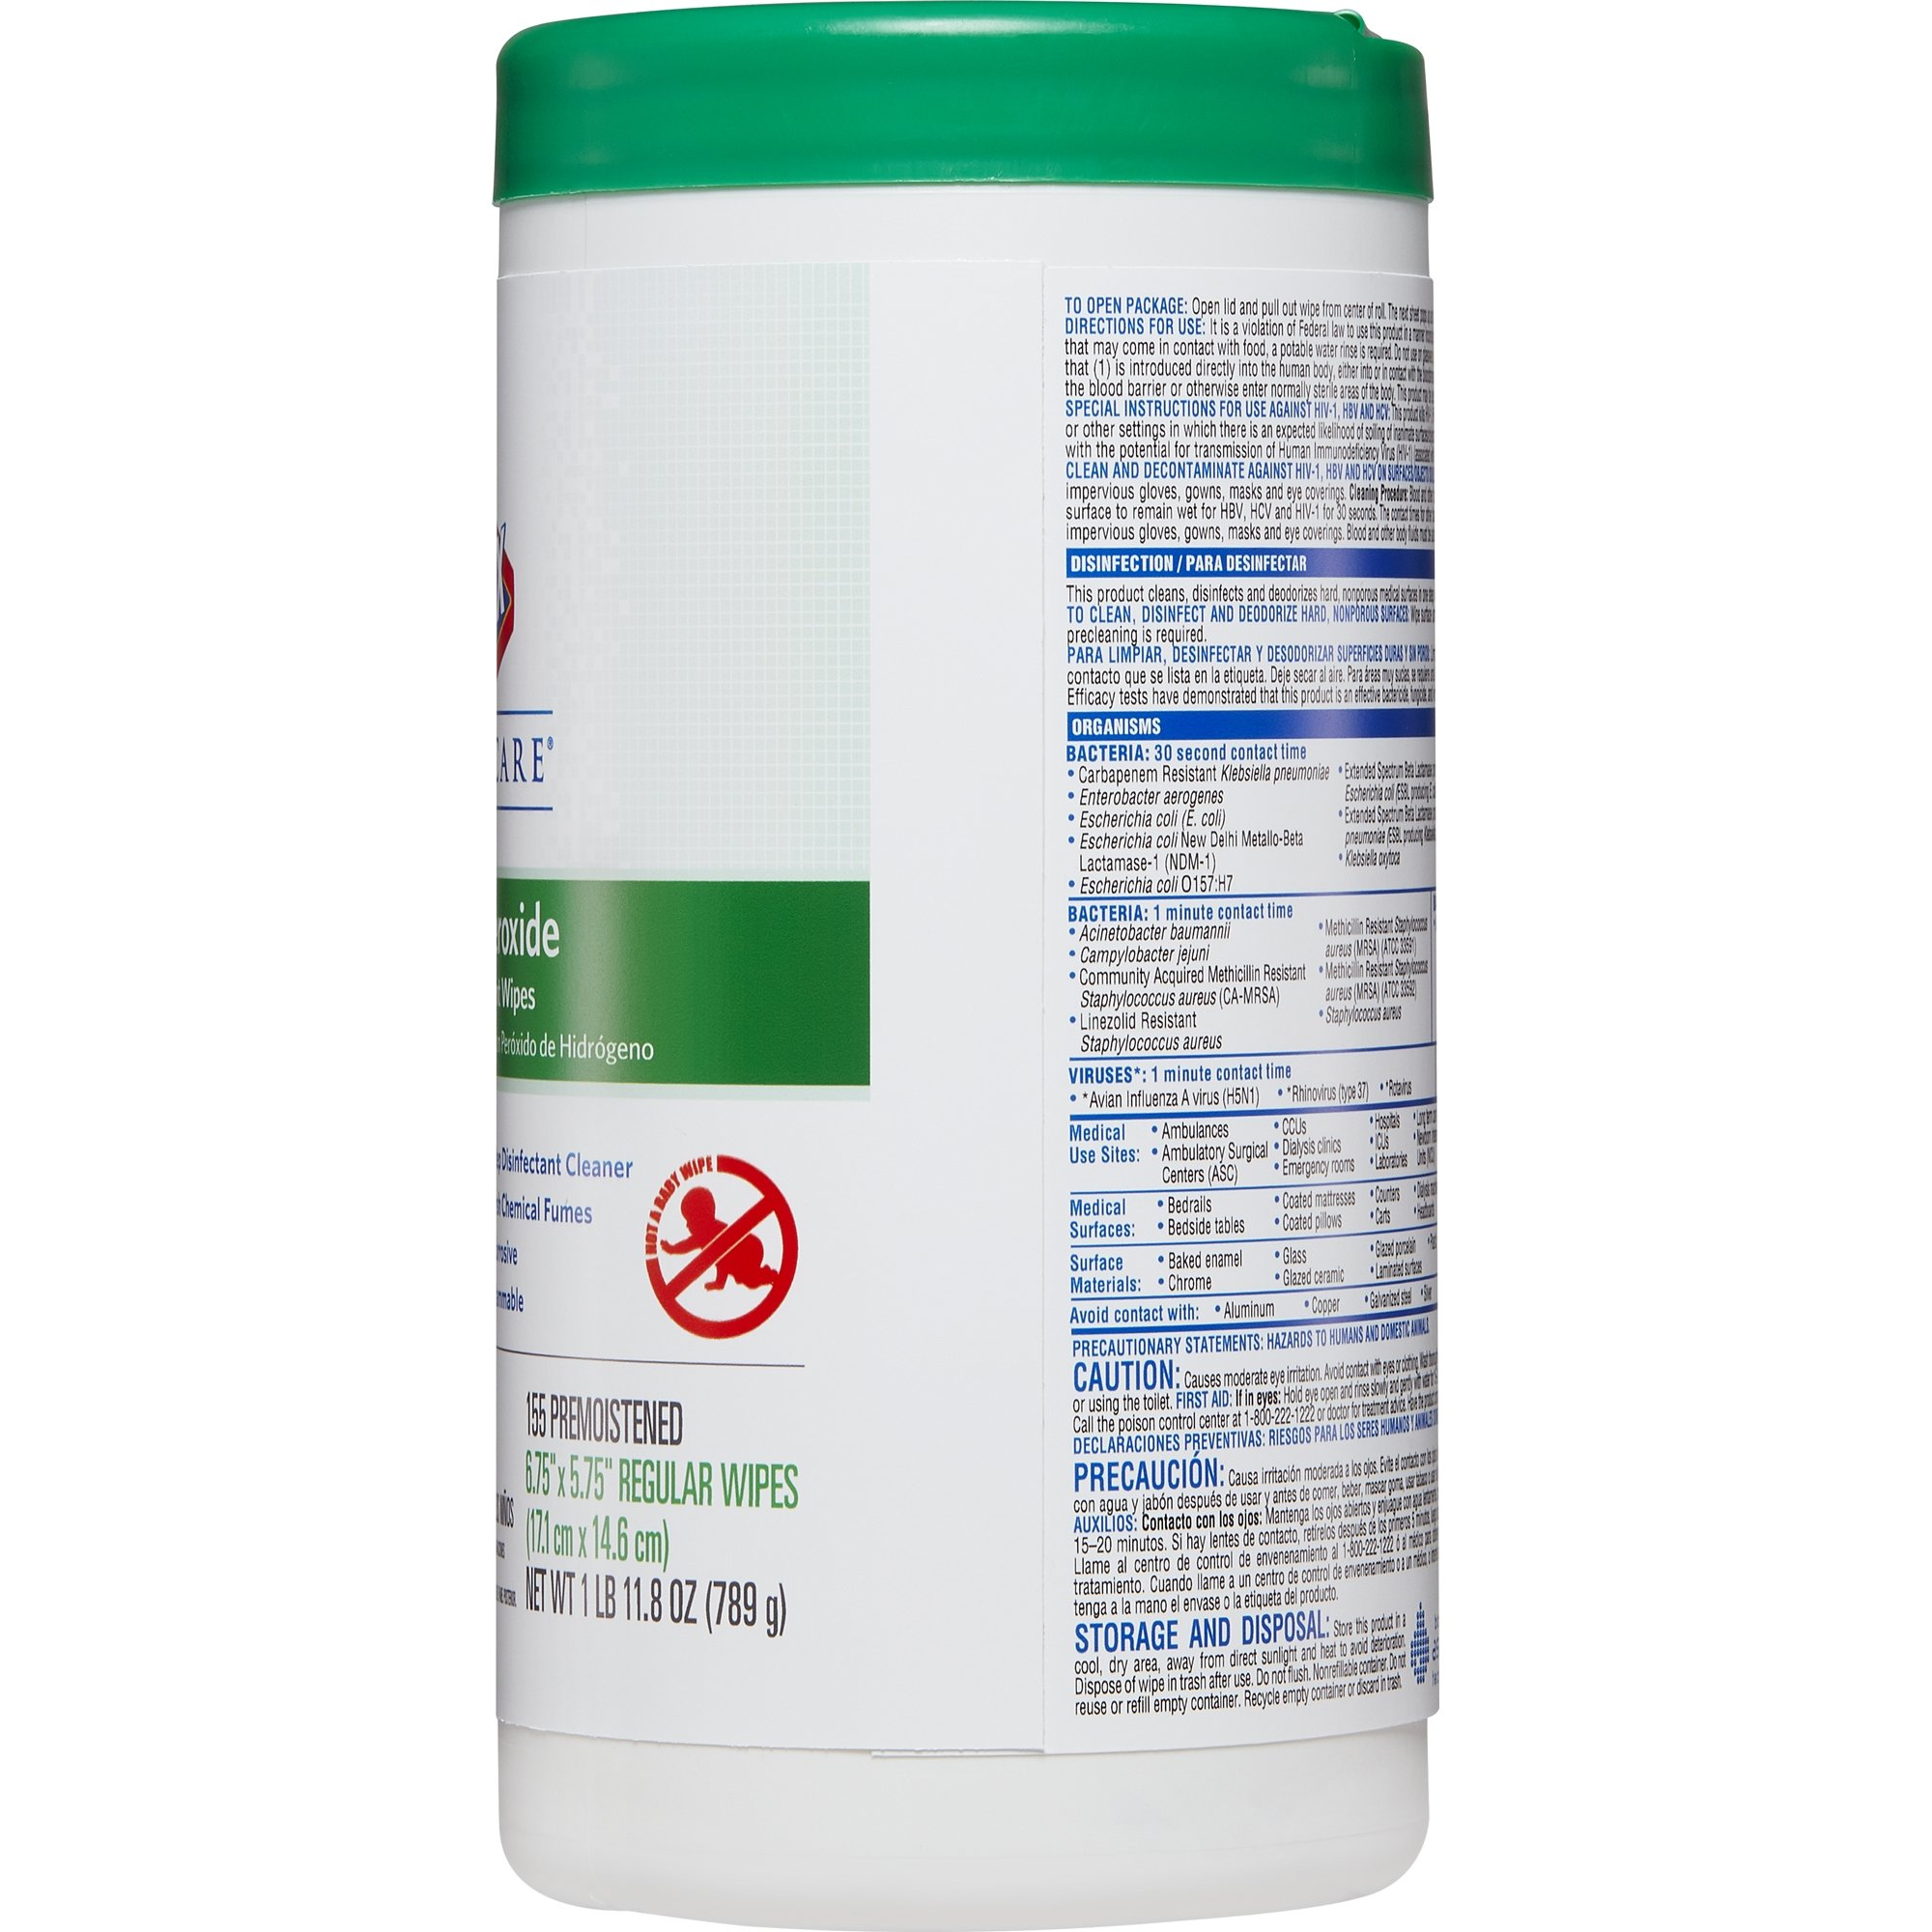 Clorox Healthcare Hydrogen Peroxide Cleaner Disinfectant Wipes, 155 Count Canister (Pack of 6) by Clorox (Image #5)